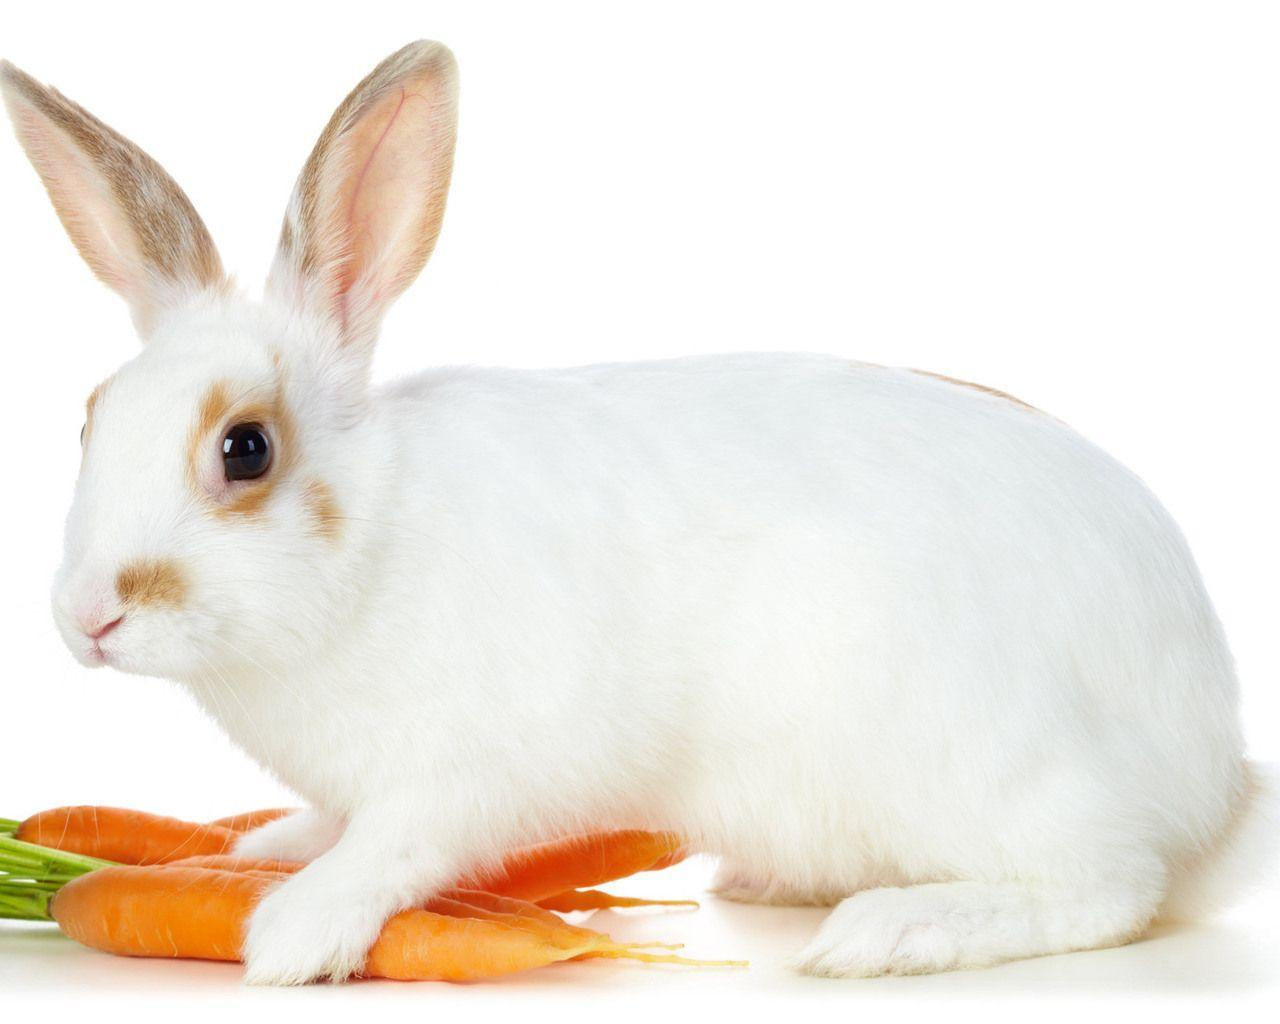 Funny Baby White Rabbit In Grass Stock Photo 167561081 ... |Awesome Baby White Bunnies